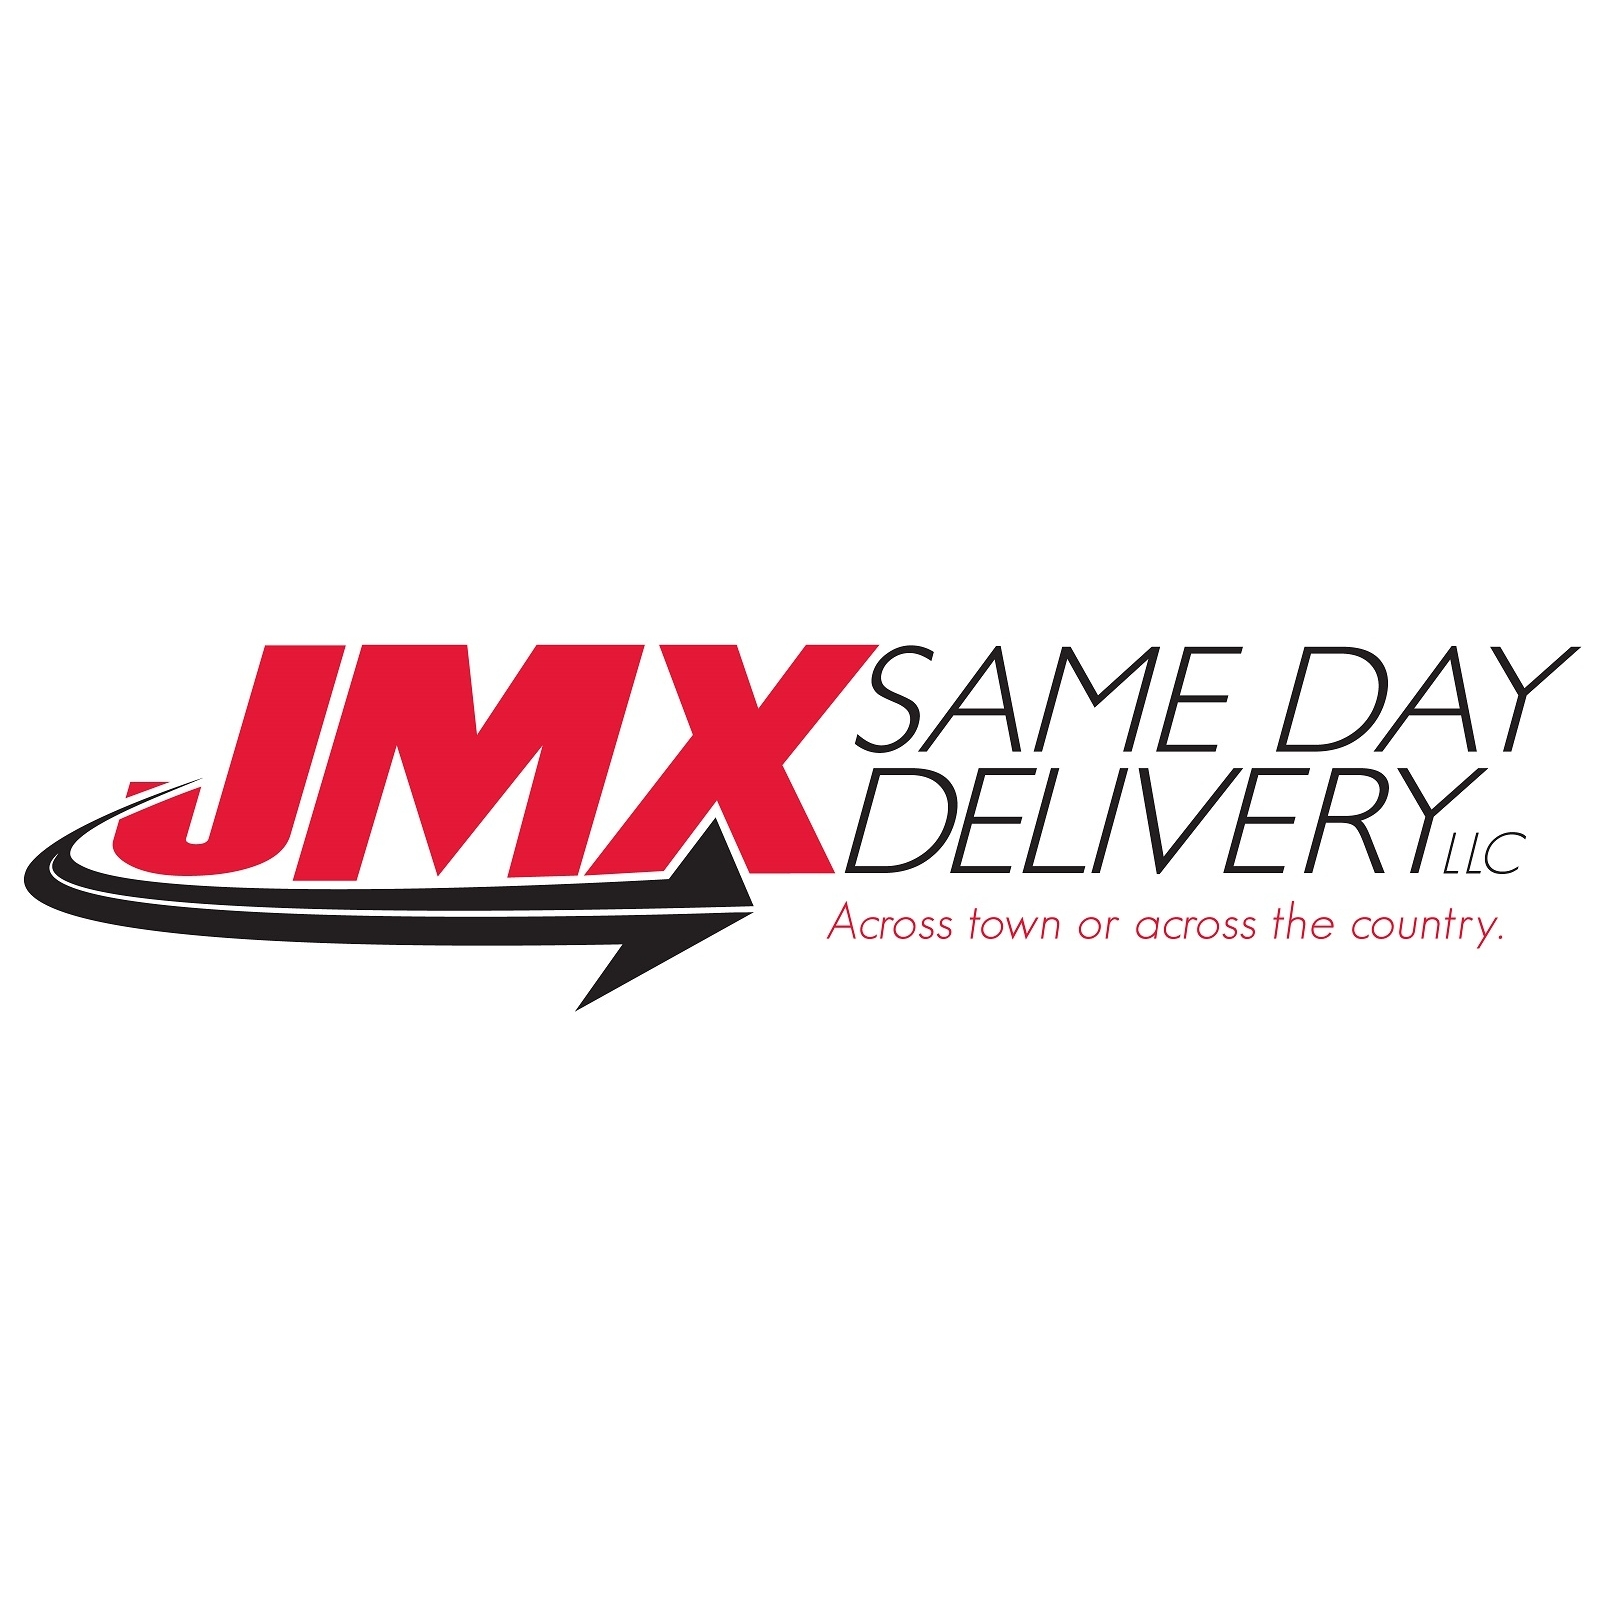 JMX Same Day Delivery, LLC